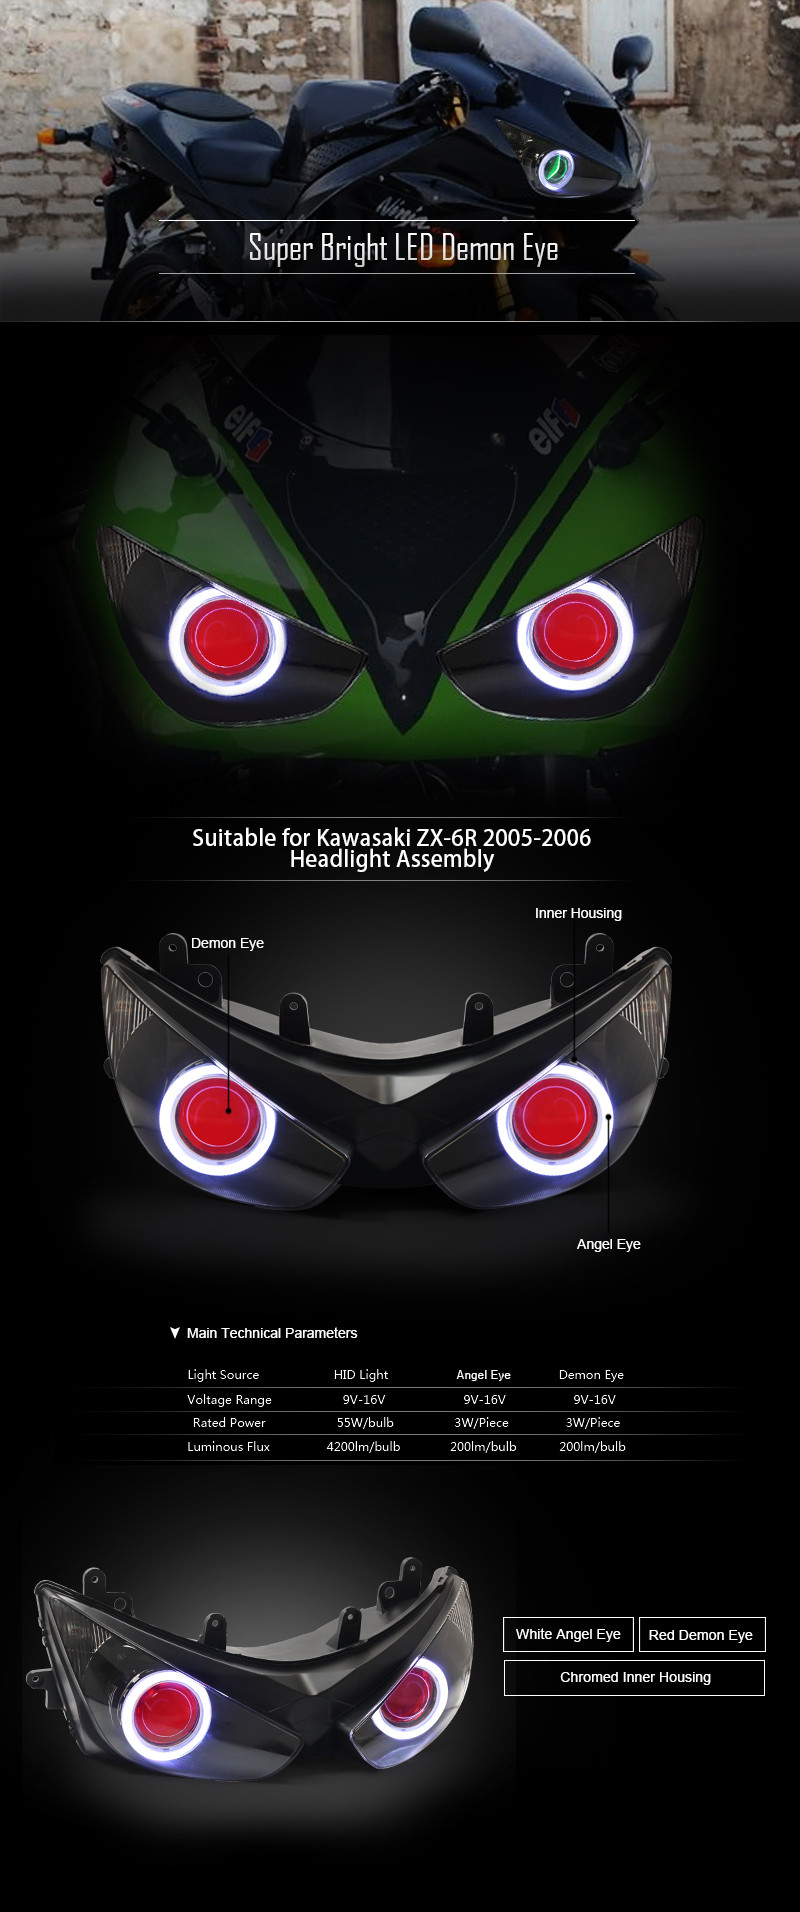 Kt Headlight For Kawasaki Ninja Zx6r Zx 6r 2005 2006 Led Angel Eye Wiring Diagram 1 X Relay Harness Connect To The Battery And Original High Low Beam Switch No Need Add Extra